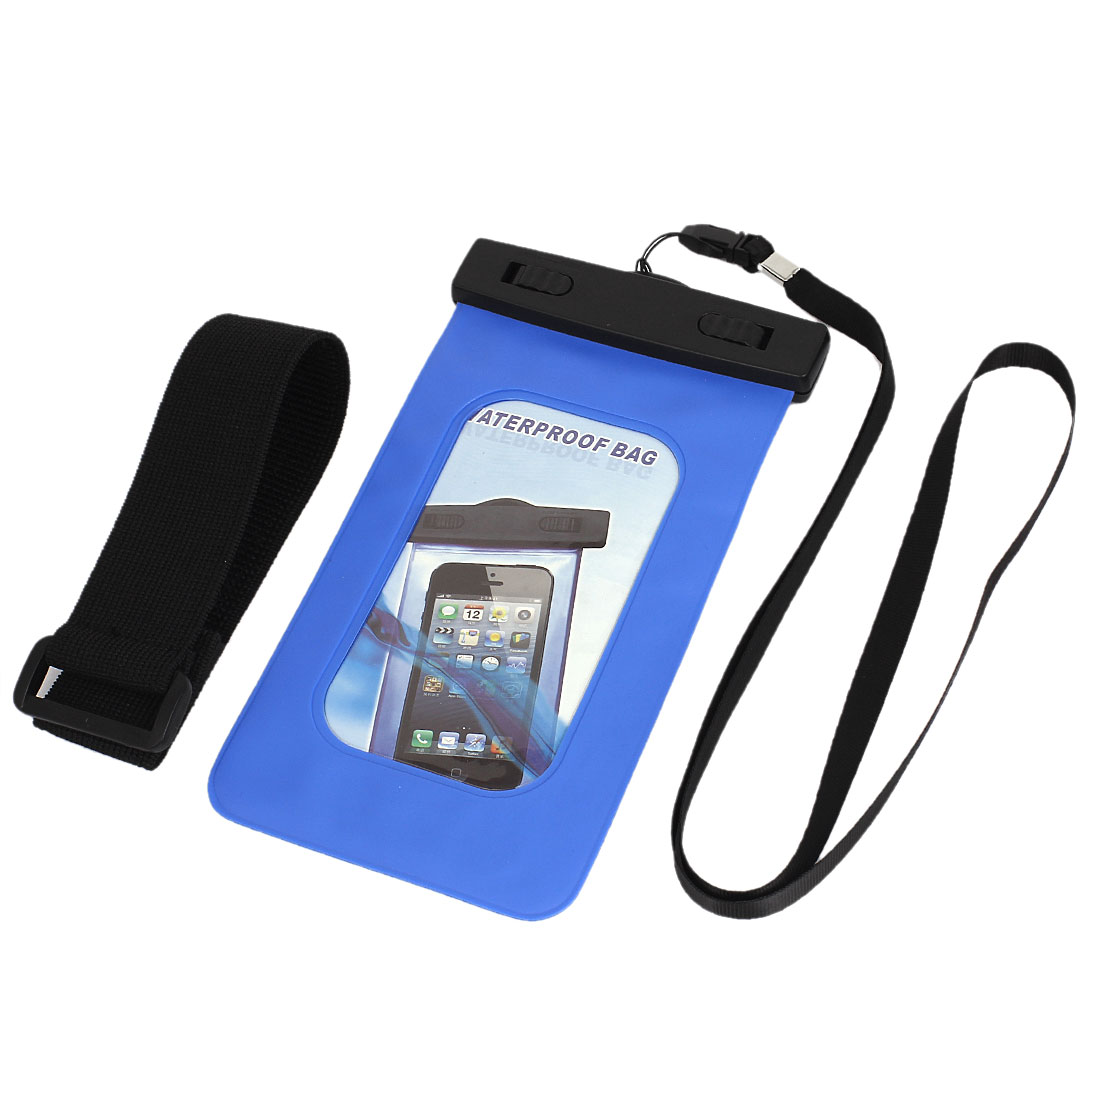 Waterproof Bag Case Holder Pouch Blue for iPhone 5G w Neck Strap Armband